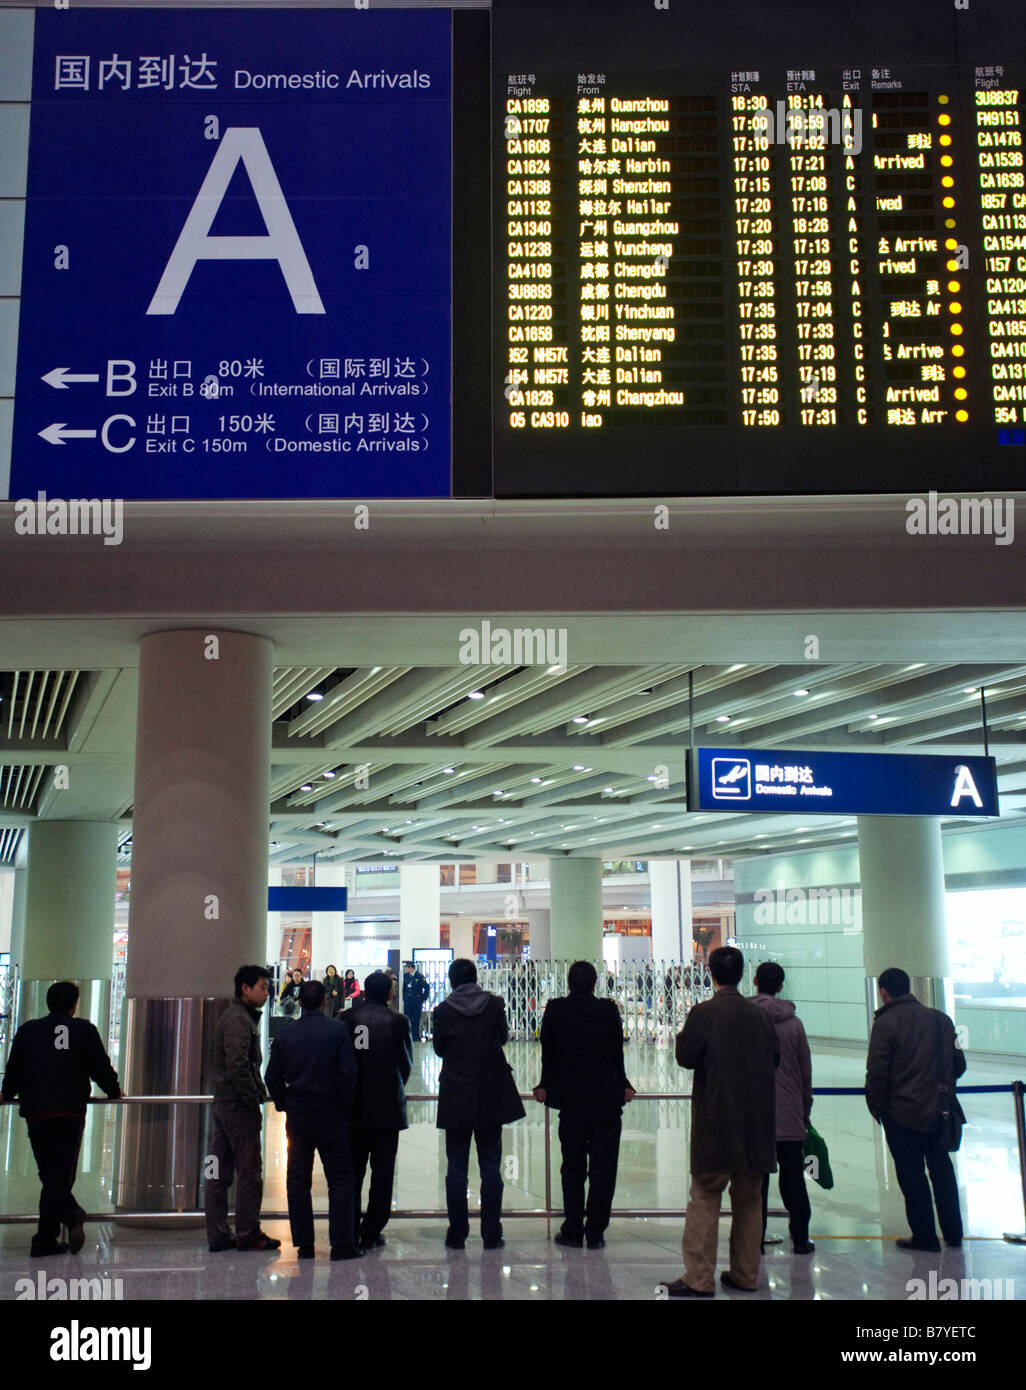 Domestic Arrivals flight information electronic display board at new Beijing Airport Terminal 3 China 2009 - Stock Image